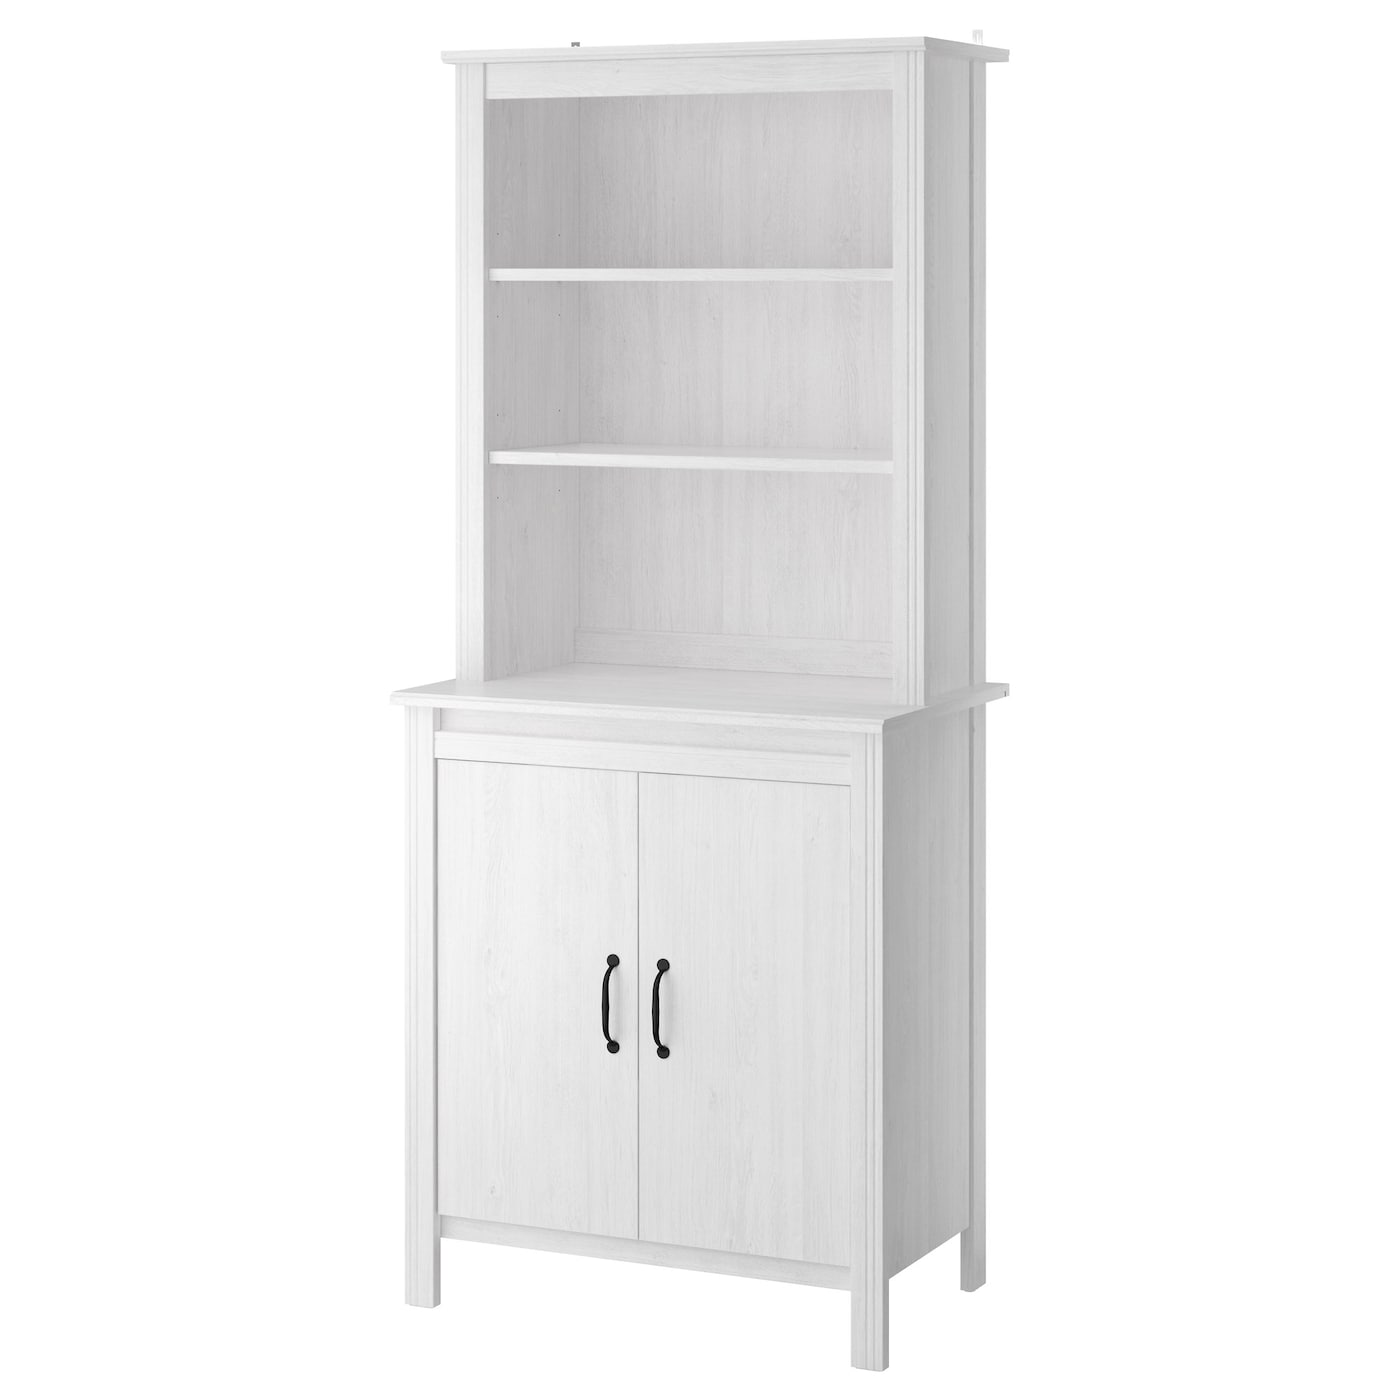 Ikea brusali high cabinet with door adjustable shelves so you can customise your storage as